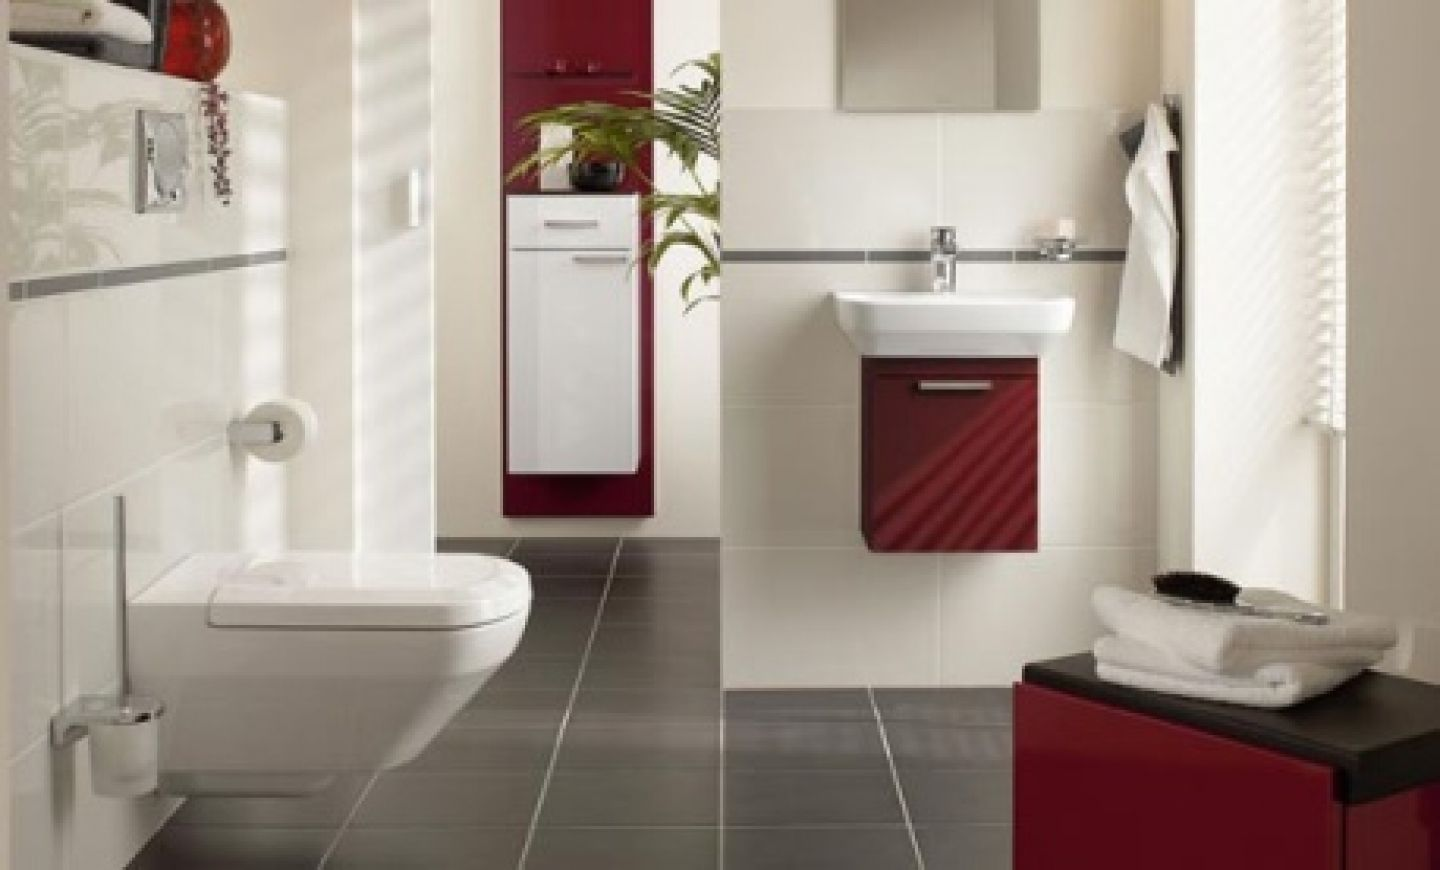 Bathroom Tiles Red elegant gray and white bathroom tile inspiration with gray floor